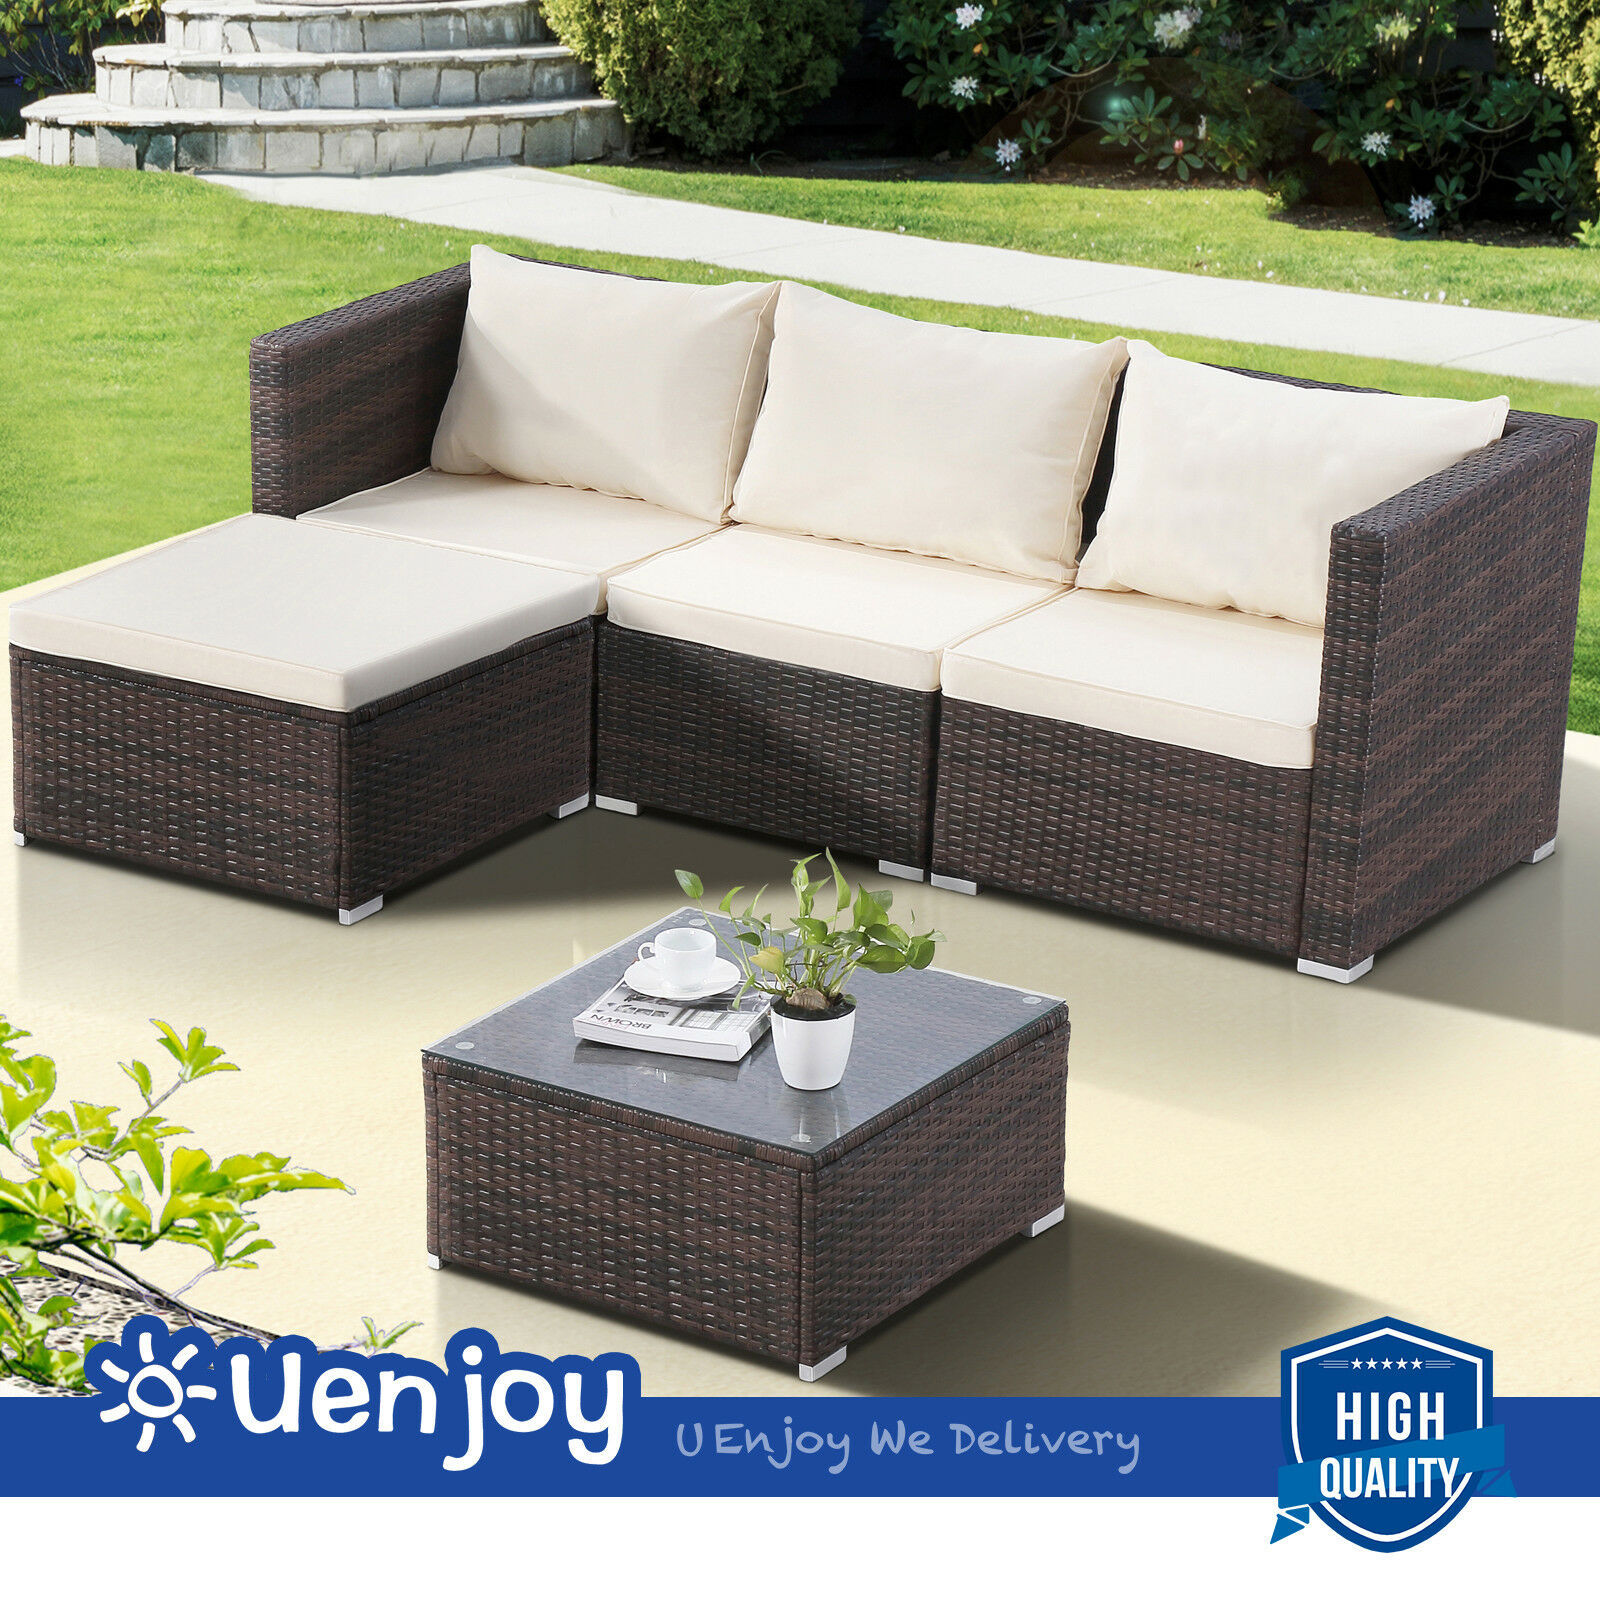 Brown 5pc Rattan Furniture Wicker Patio Outdoor Sofa Set Couch With Cushion